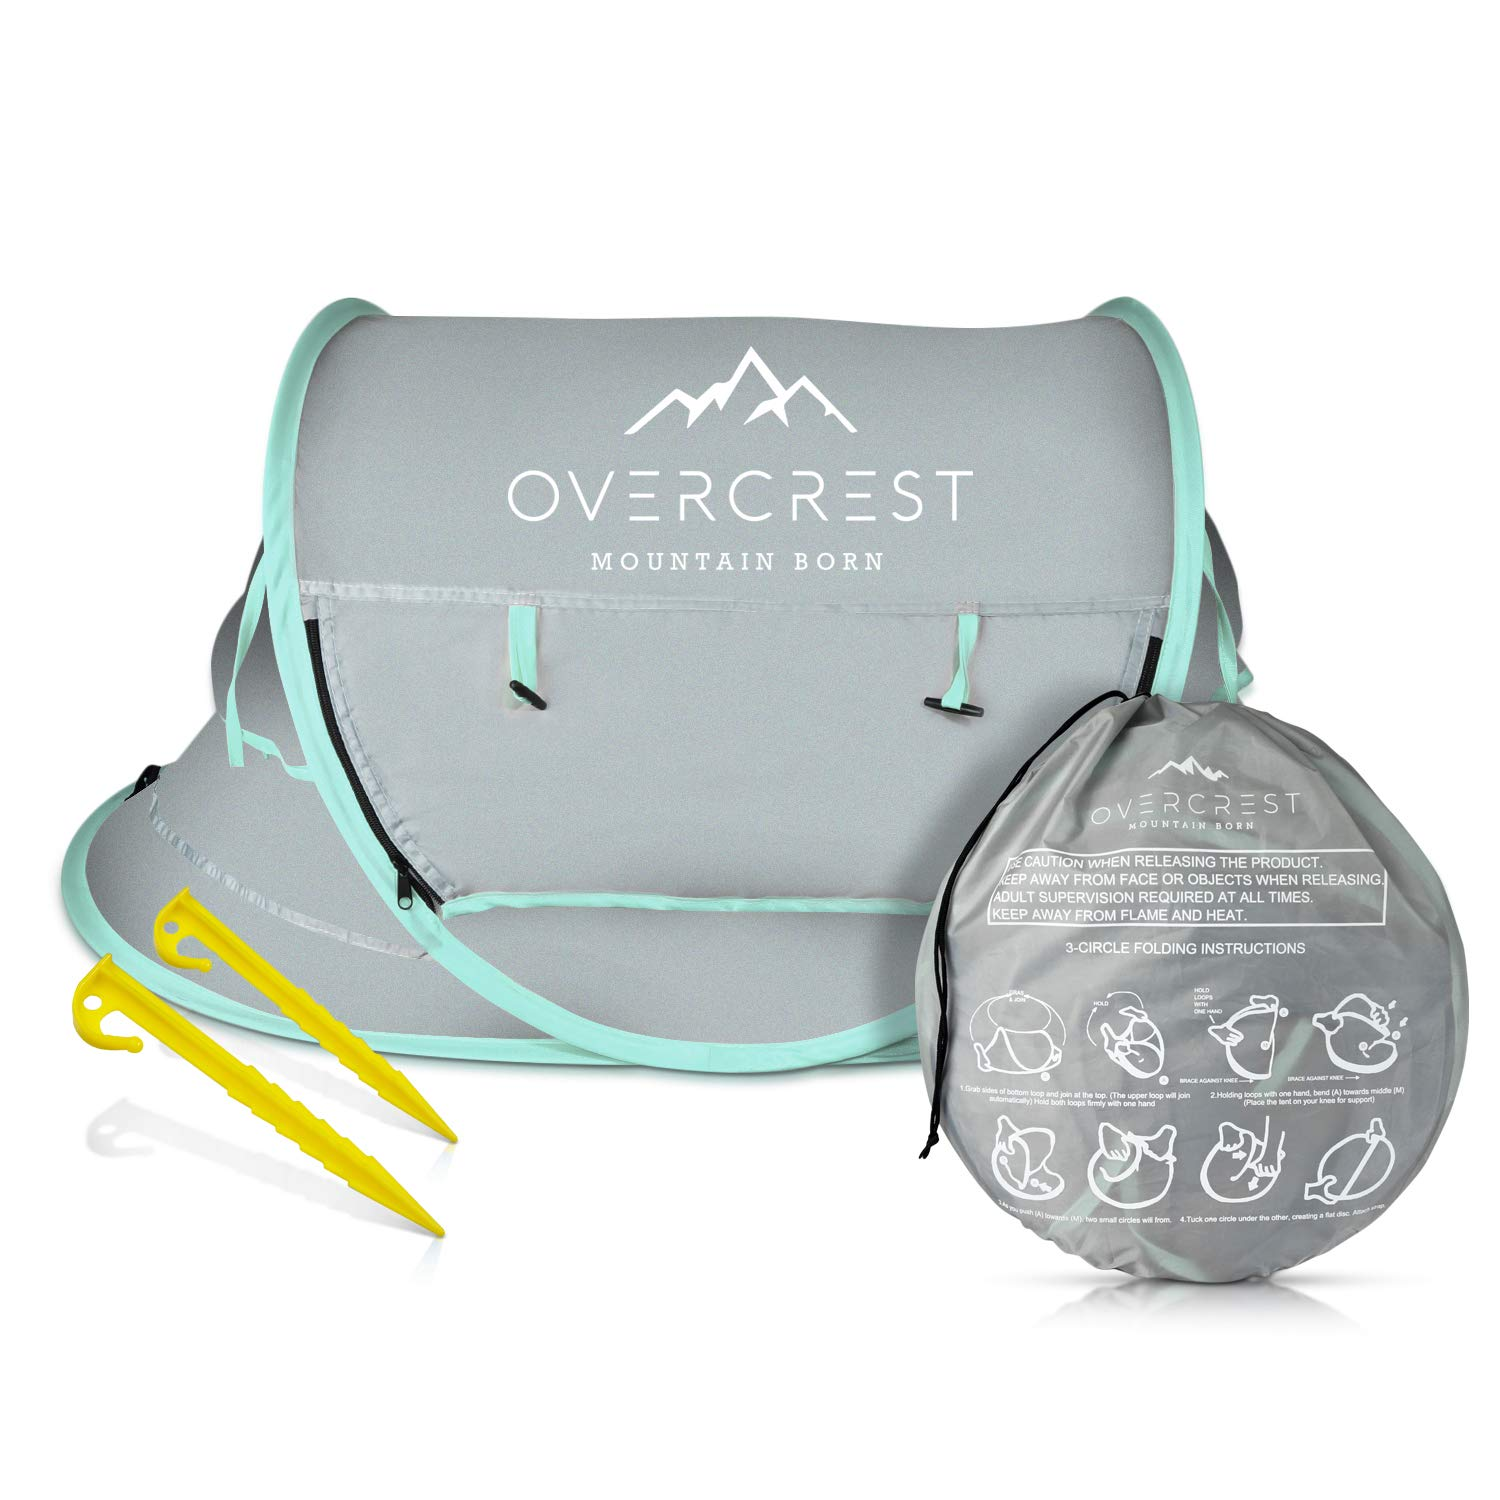 Overcrest Portable Beach Pop up Tent Babies, UPF 50+, Large Sun Shelter Infant Babies, Mosquito Net Sunshade, Lightweight Outdoor Travel Baby Crib Bed (Mint) by Overcrest